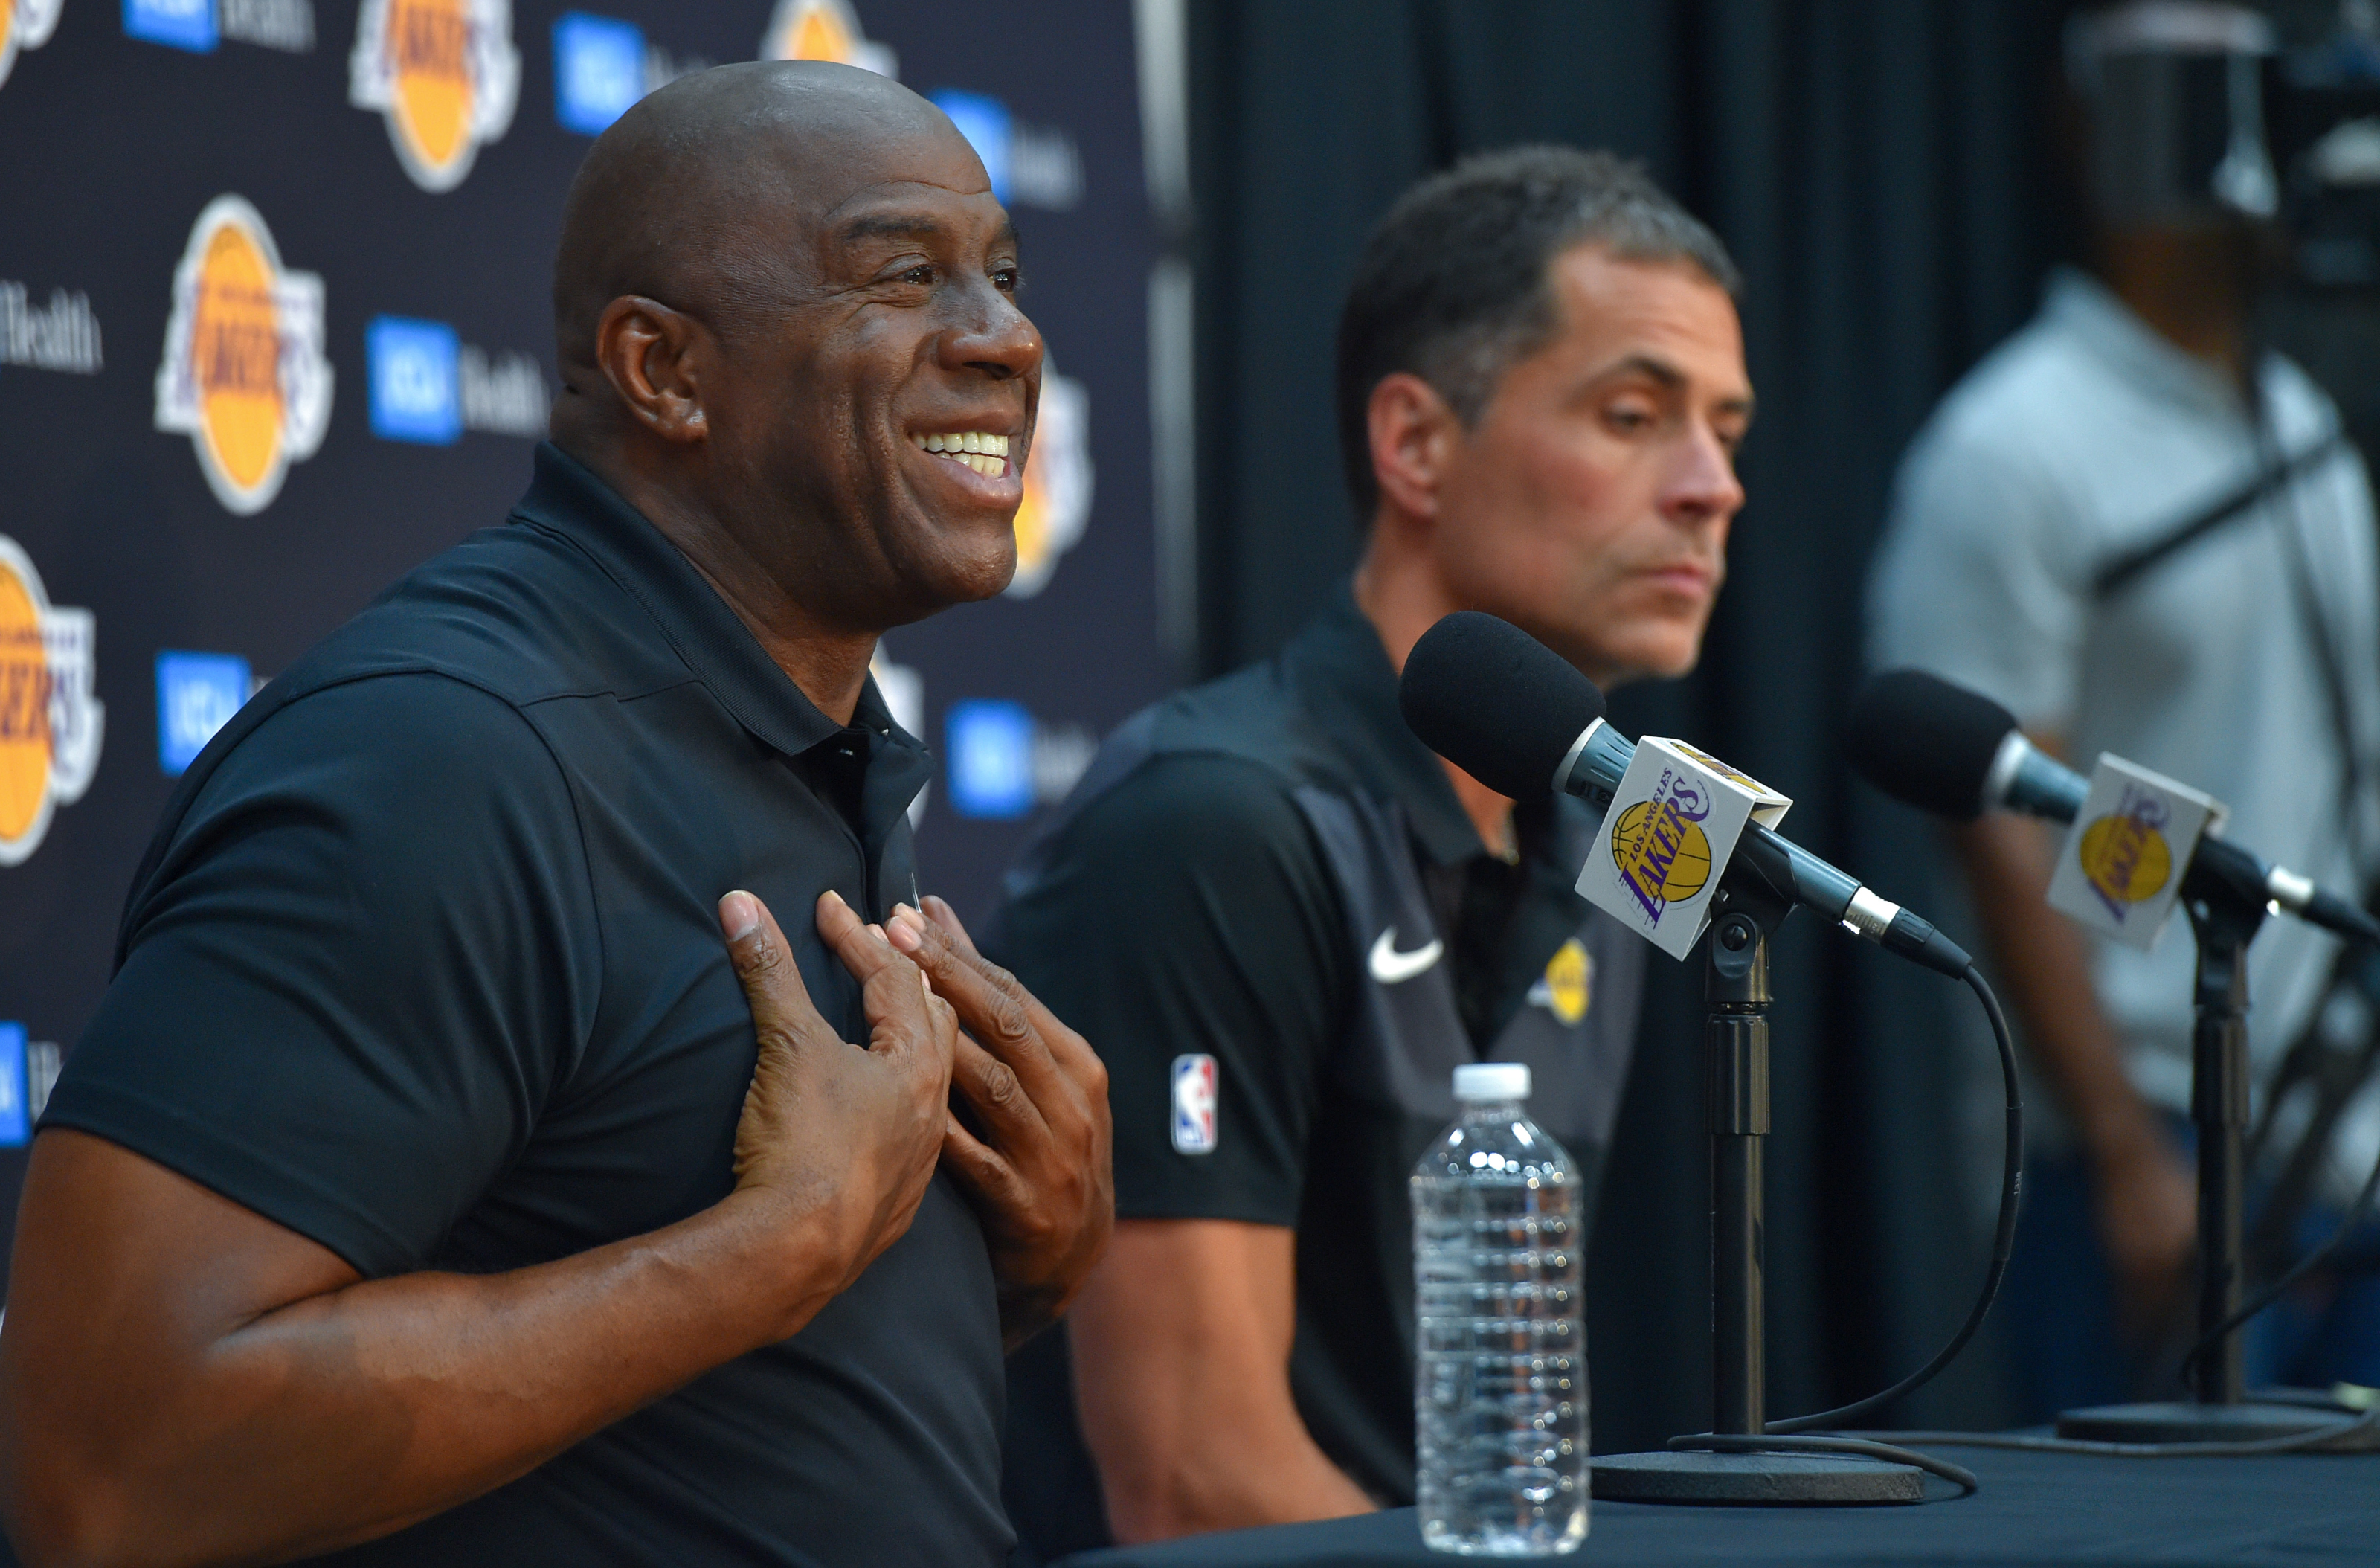 Los Angeles Lakers: Magic Johnson believes Clippers have more depth